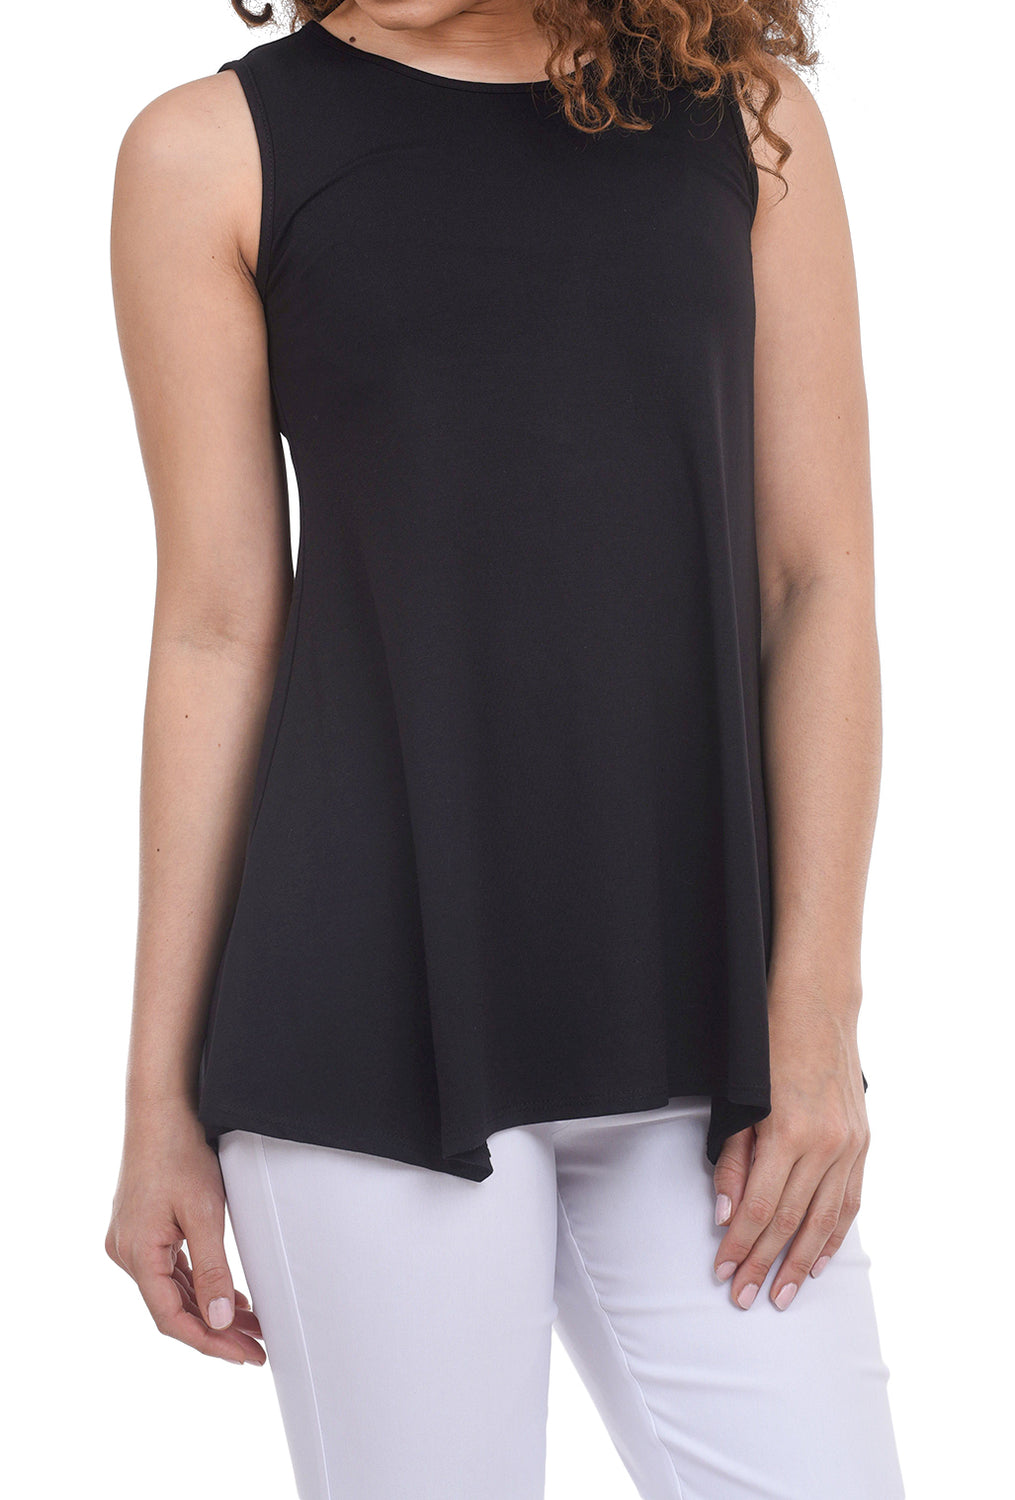 Estelle & Finn Fit and Flare Tank, Black